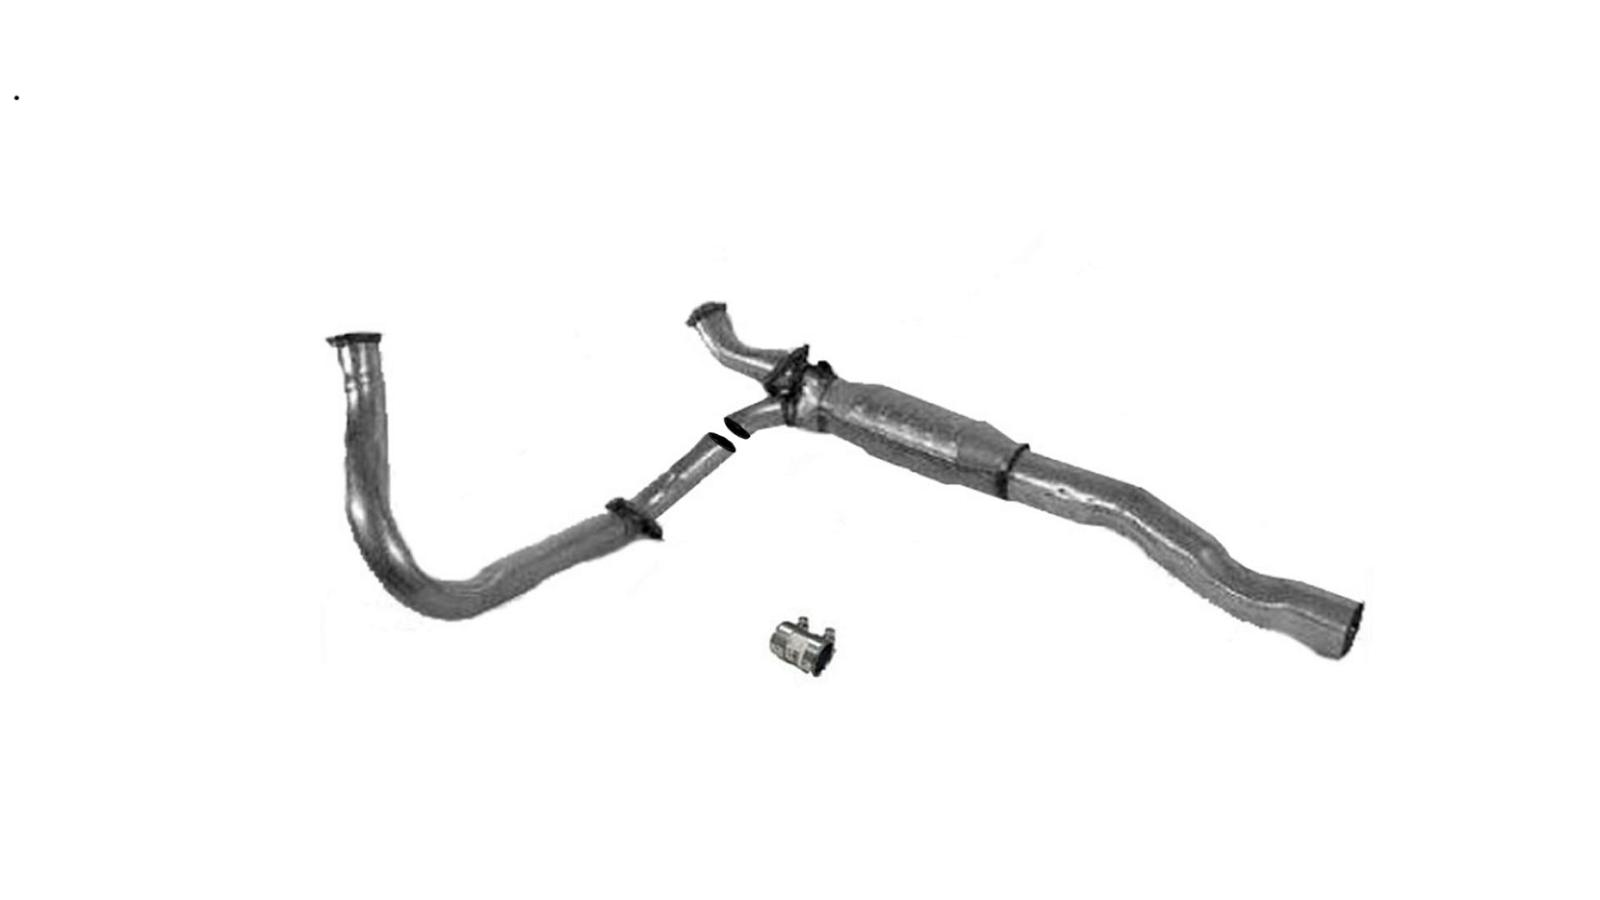 Direct Fit Catalytic Converter For 94 95 Rwd Astro Van